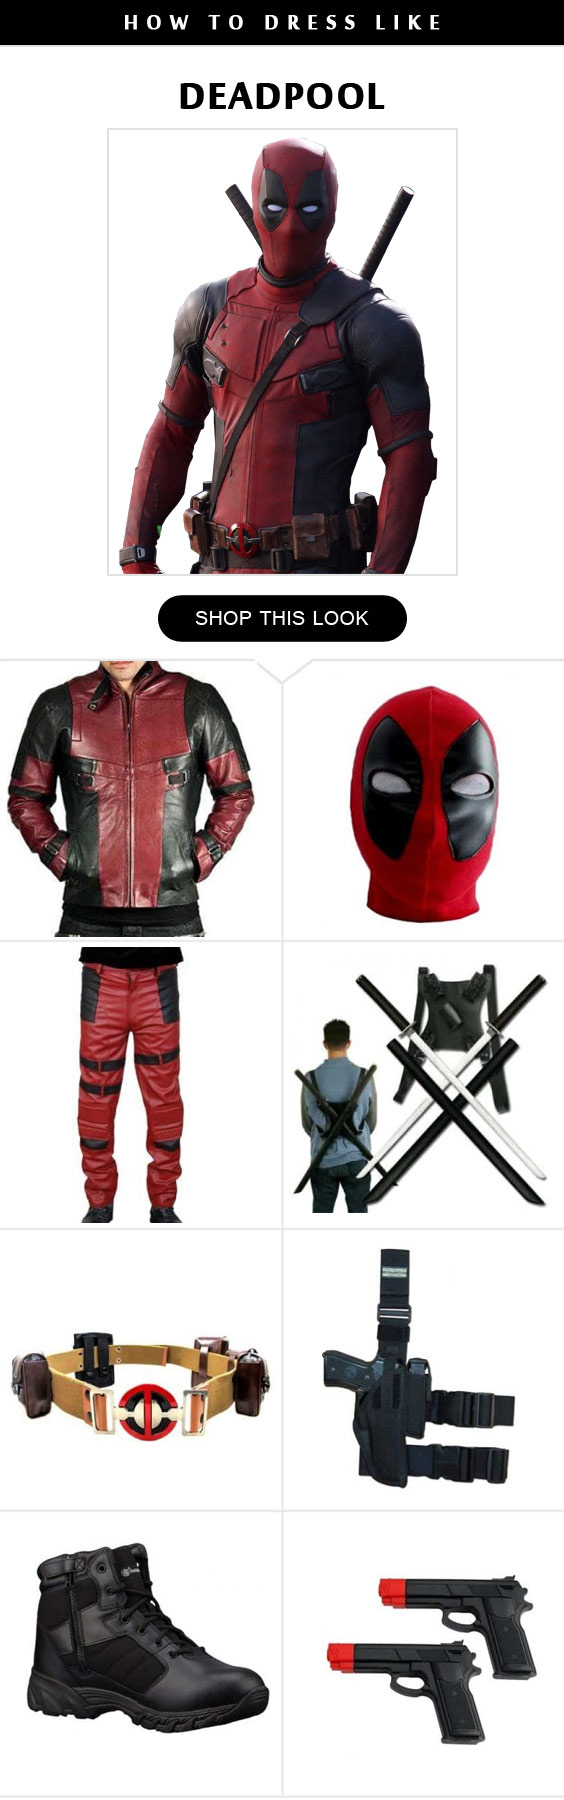 The complete deadpool costume guide for merc with a mouth family deadpool cosplay costume infographic solutioingenieria Choice Image